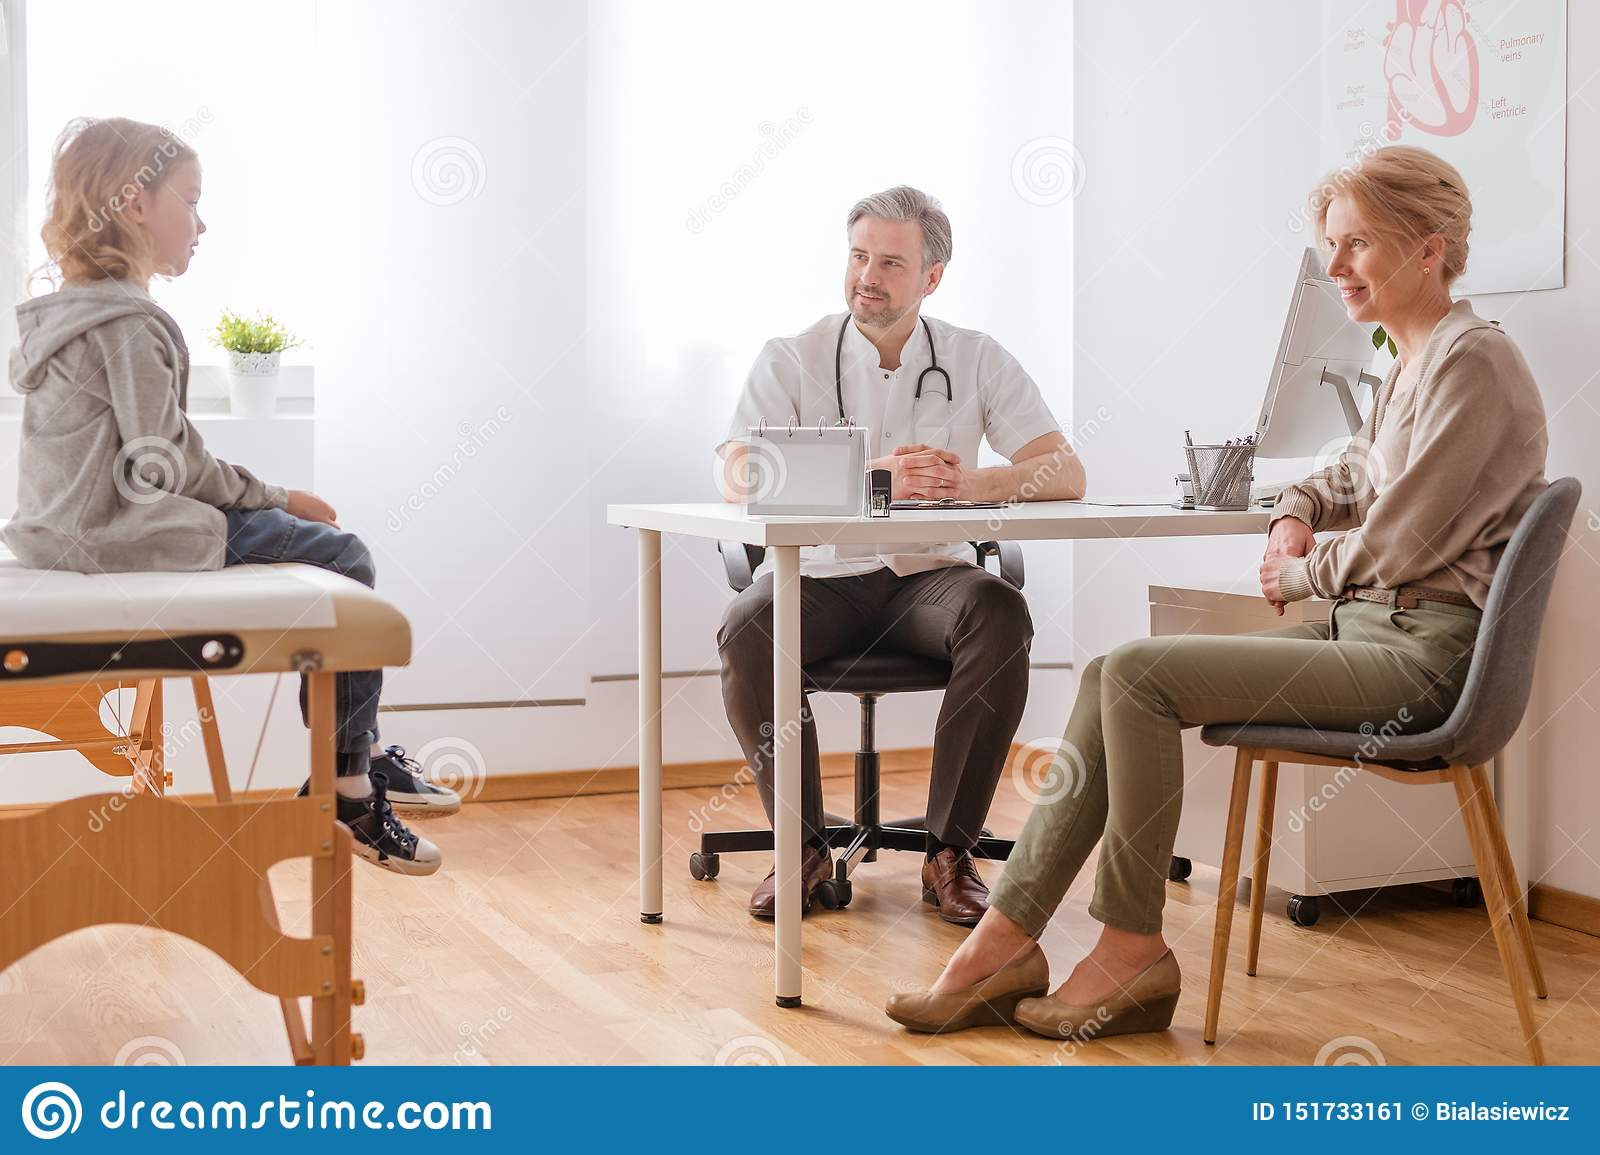 Handsome doctor, mother and son in modern hospital office